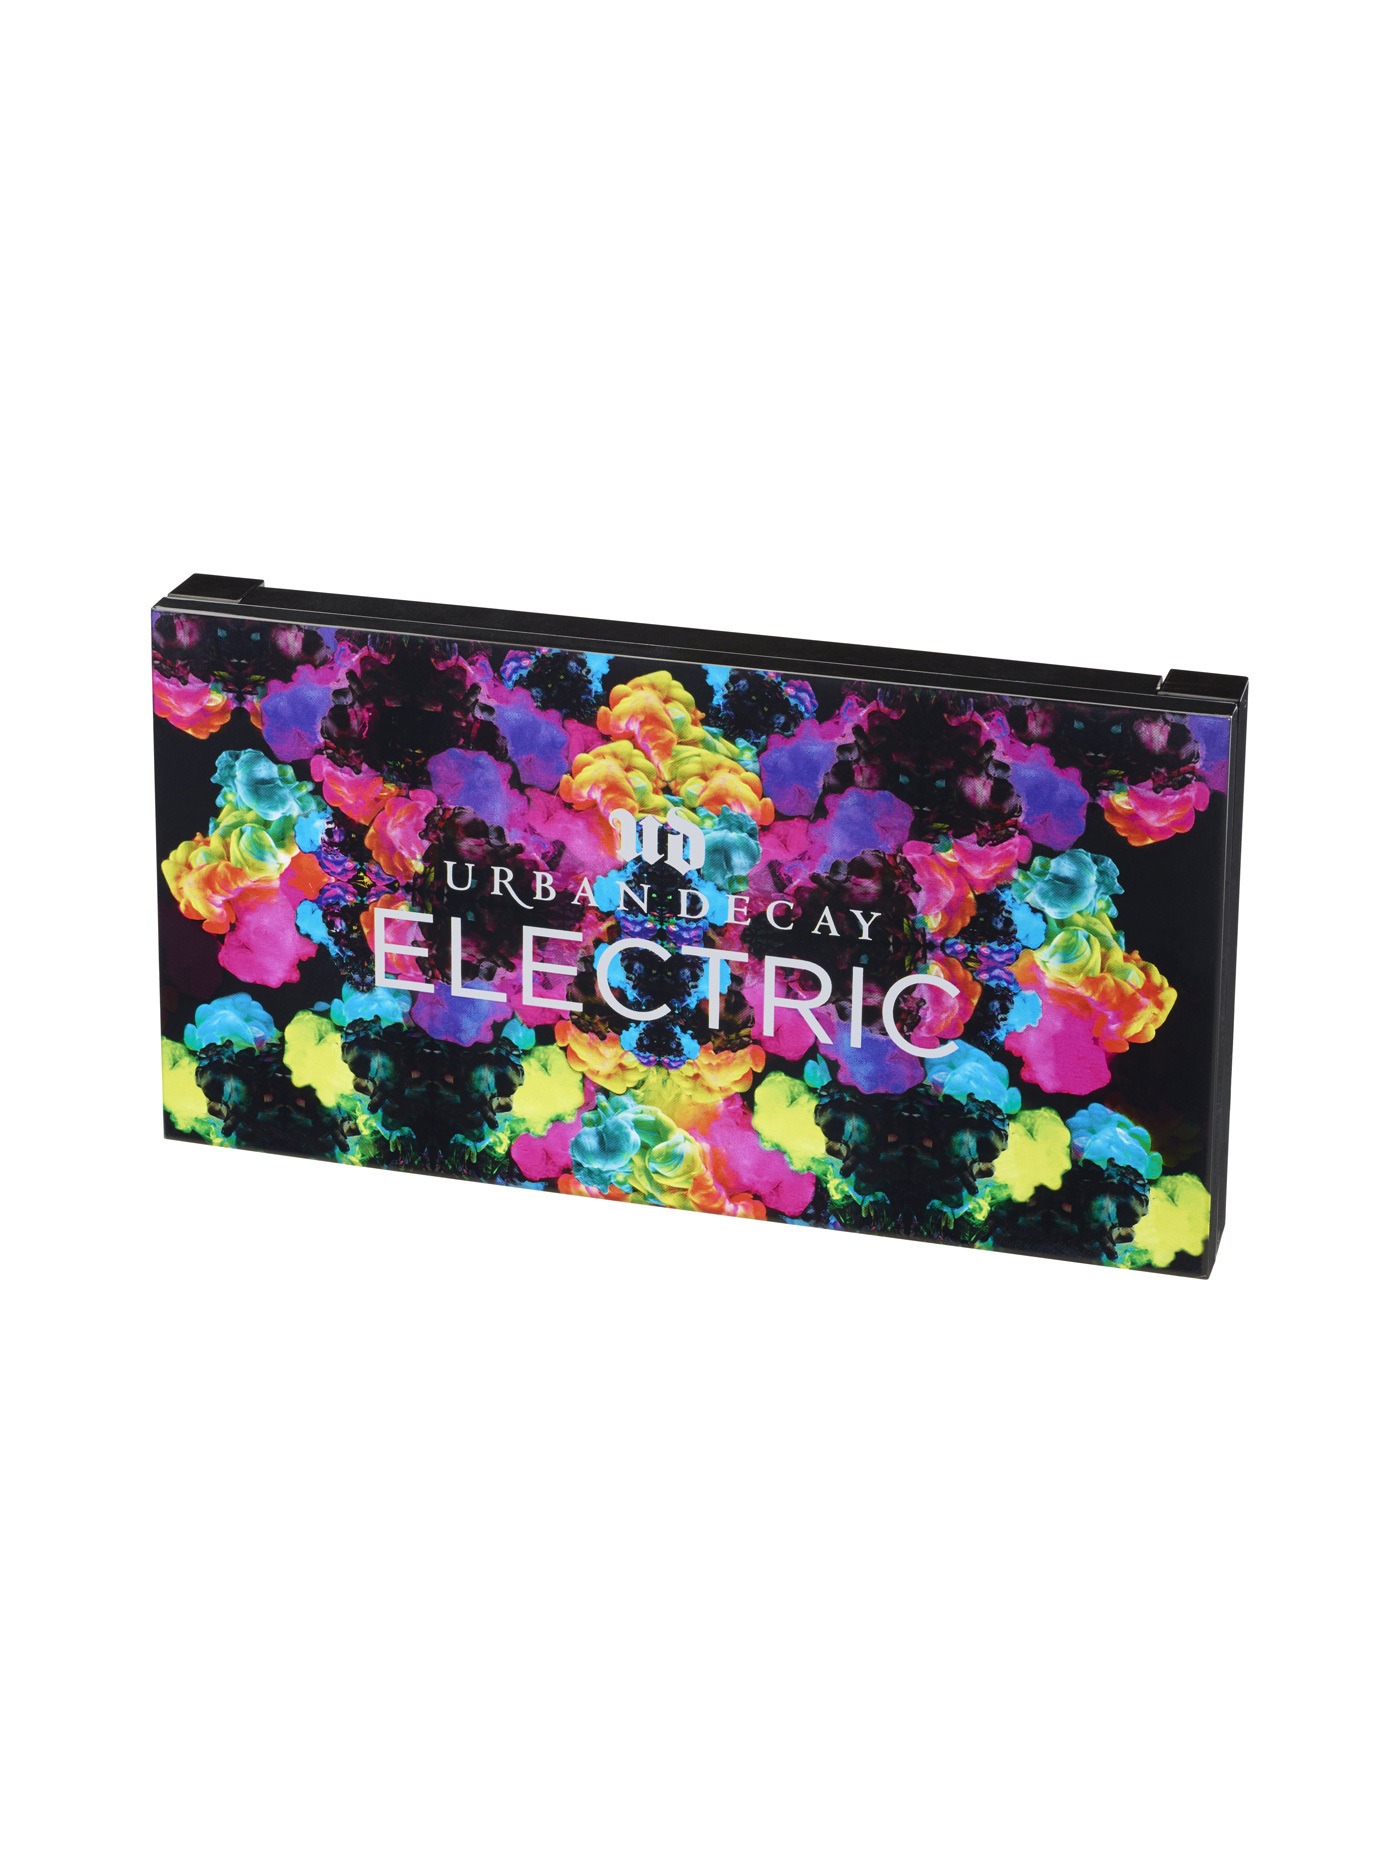 URBAN DECAY Electric Pressed Pigment Palette 10色 送料無料